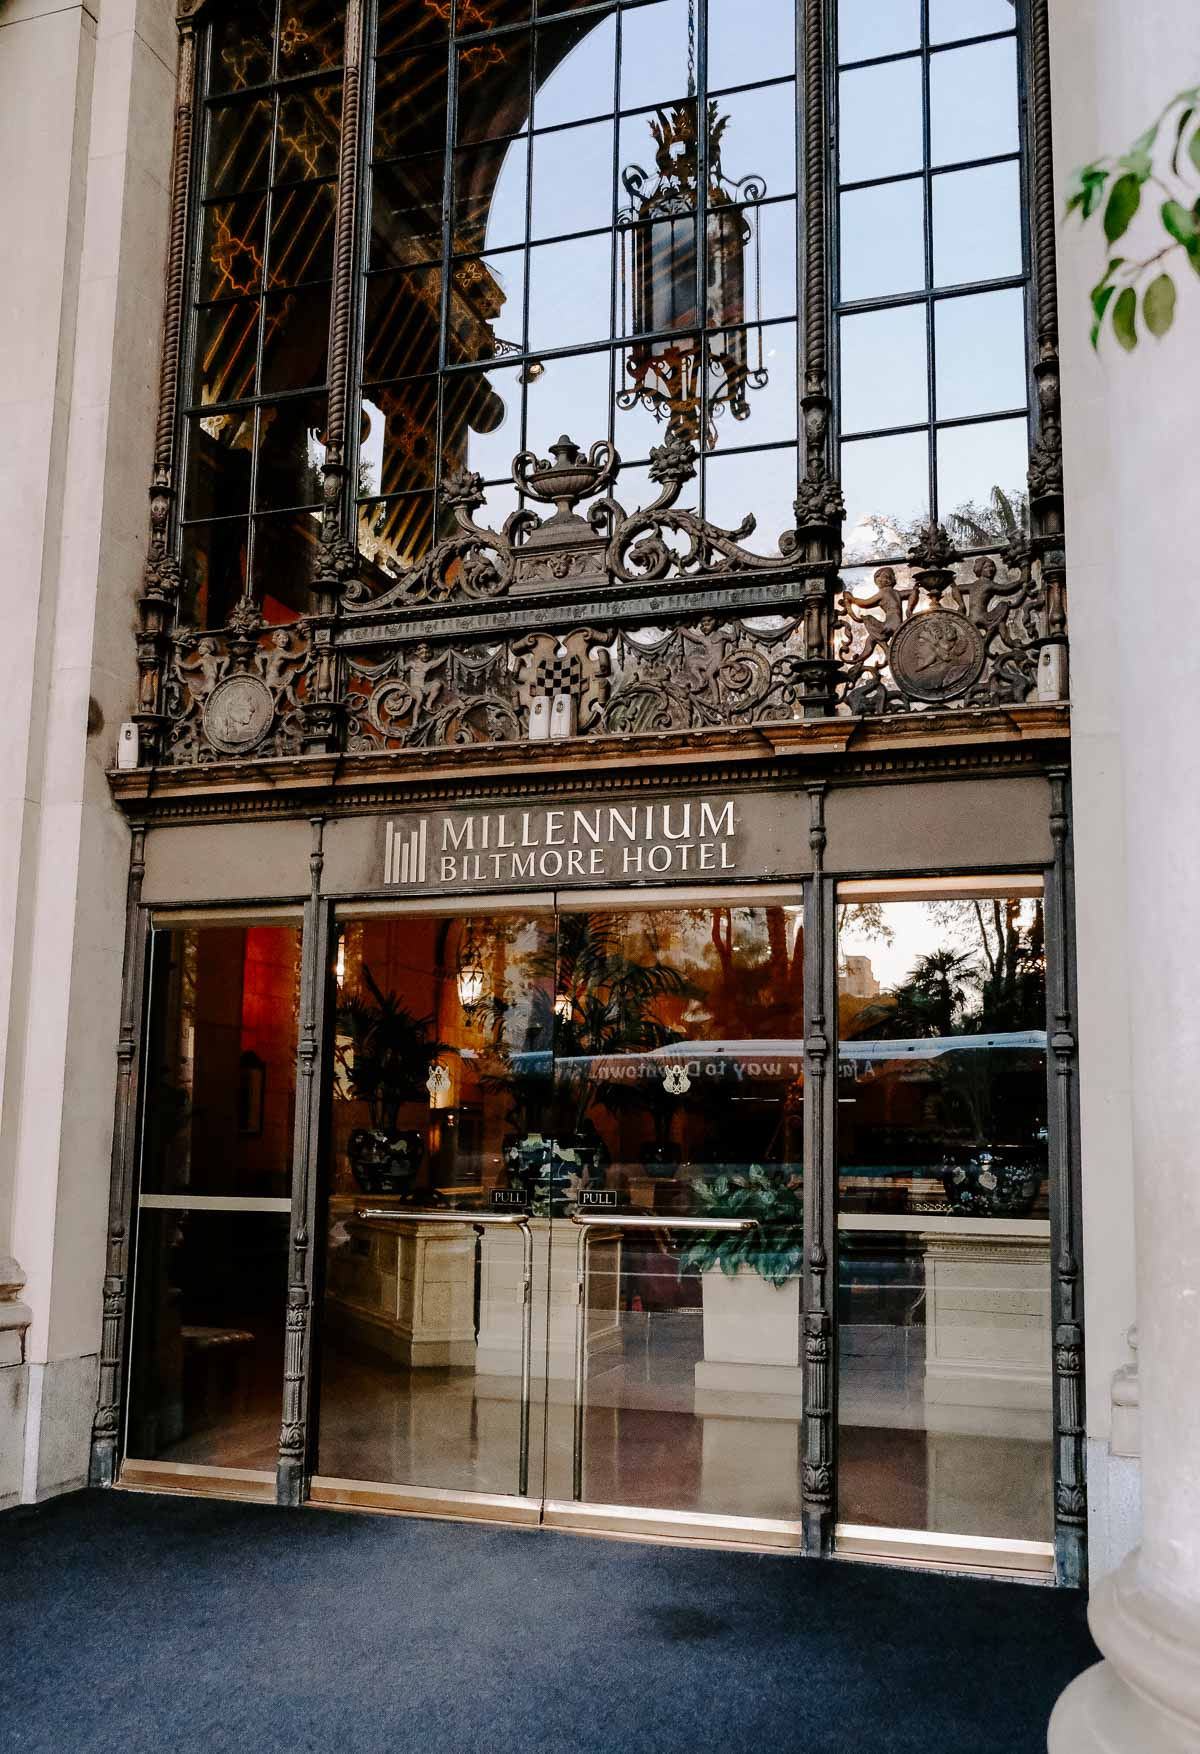 Planning a girl's trip to LA and need ideas on what to do? This chic girl's guide to LA has ideas on what to do, where to eat, where to shop, and where to stay, just to name a few! The millennium Biltmore hotel in Los Angeles is a chic and luxurious place to stay!